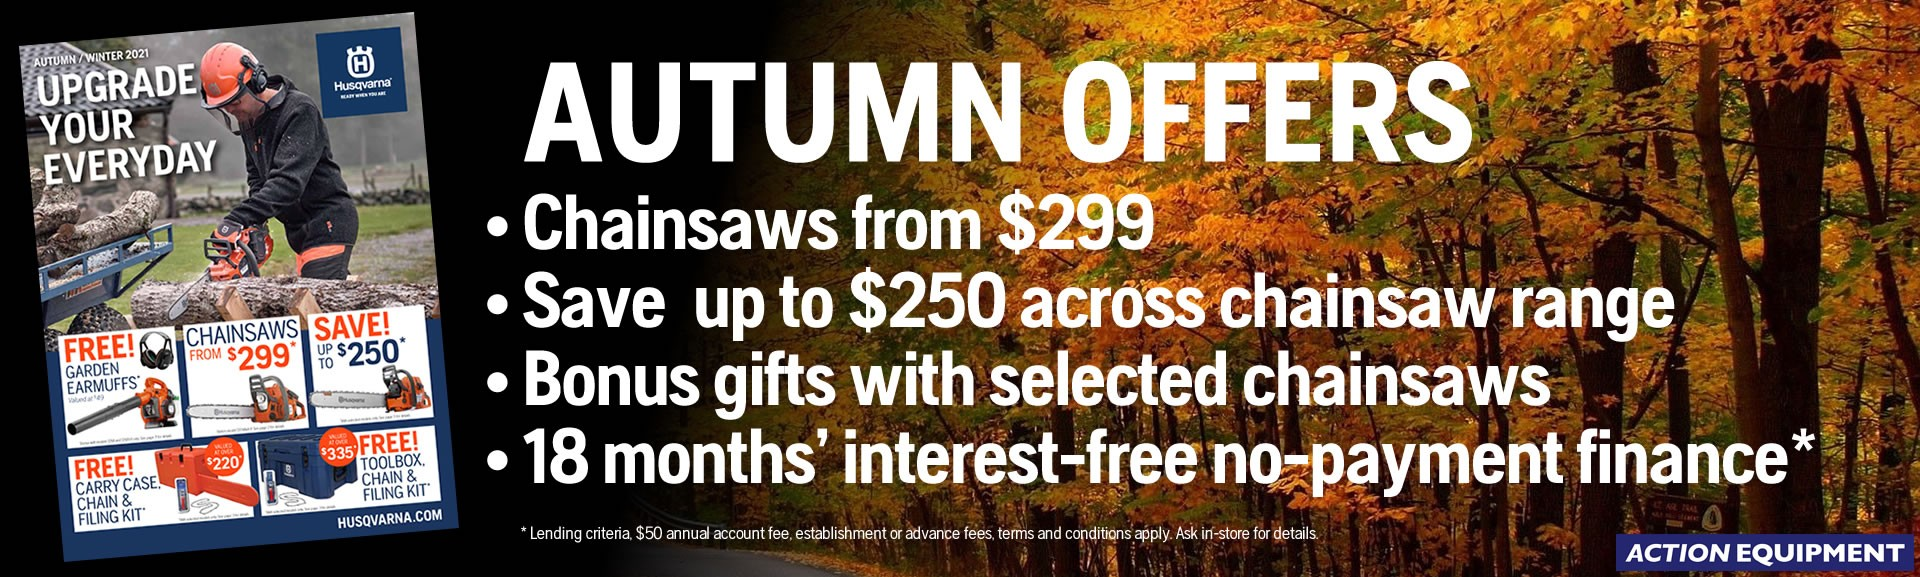 Husqvarna Autumn Savings 2021